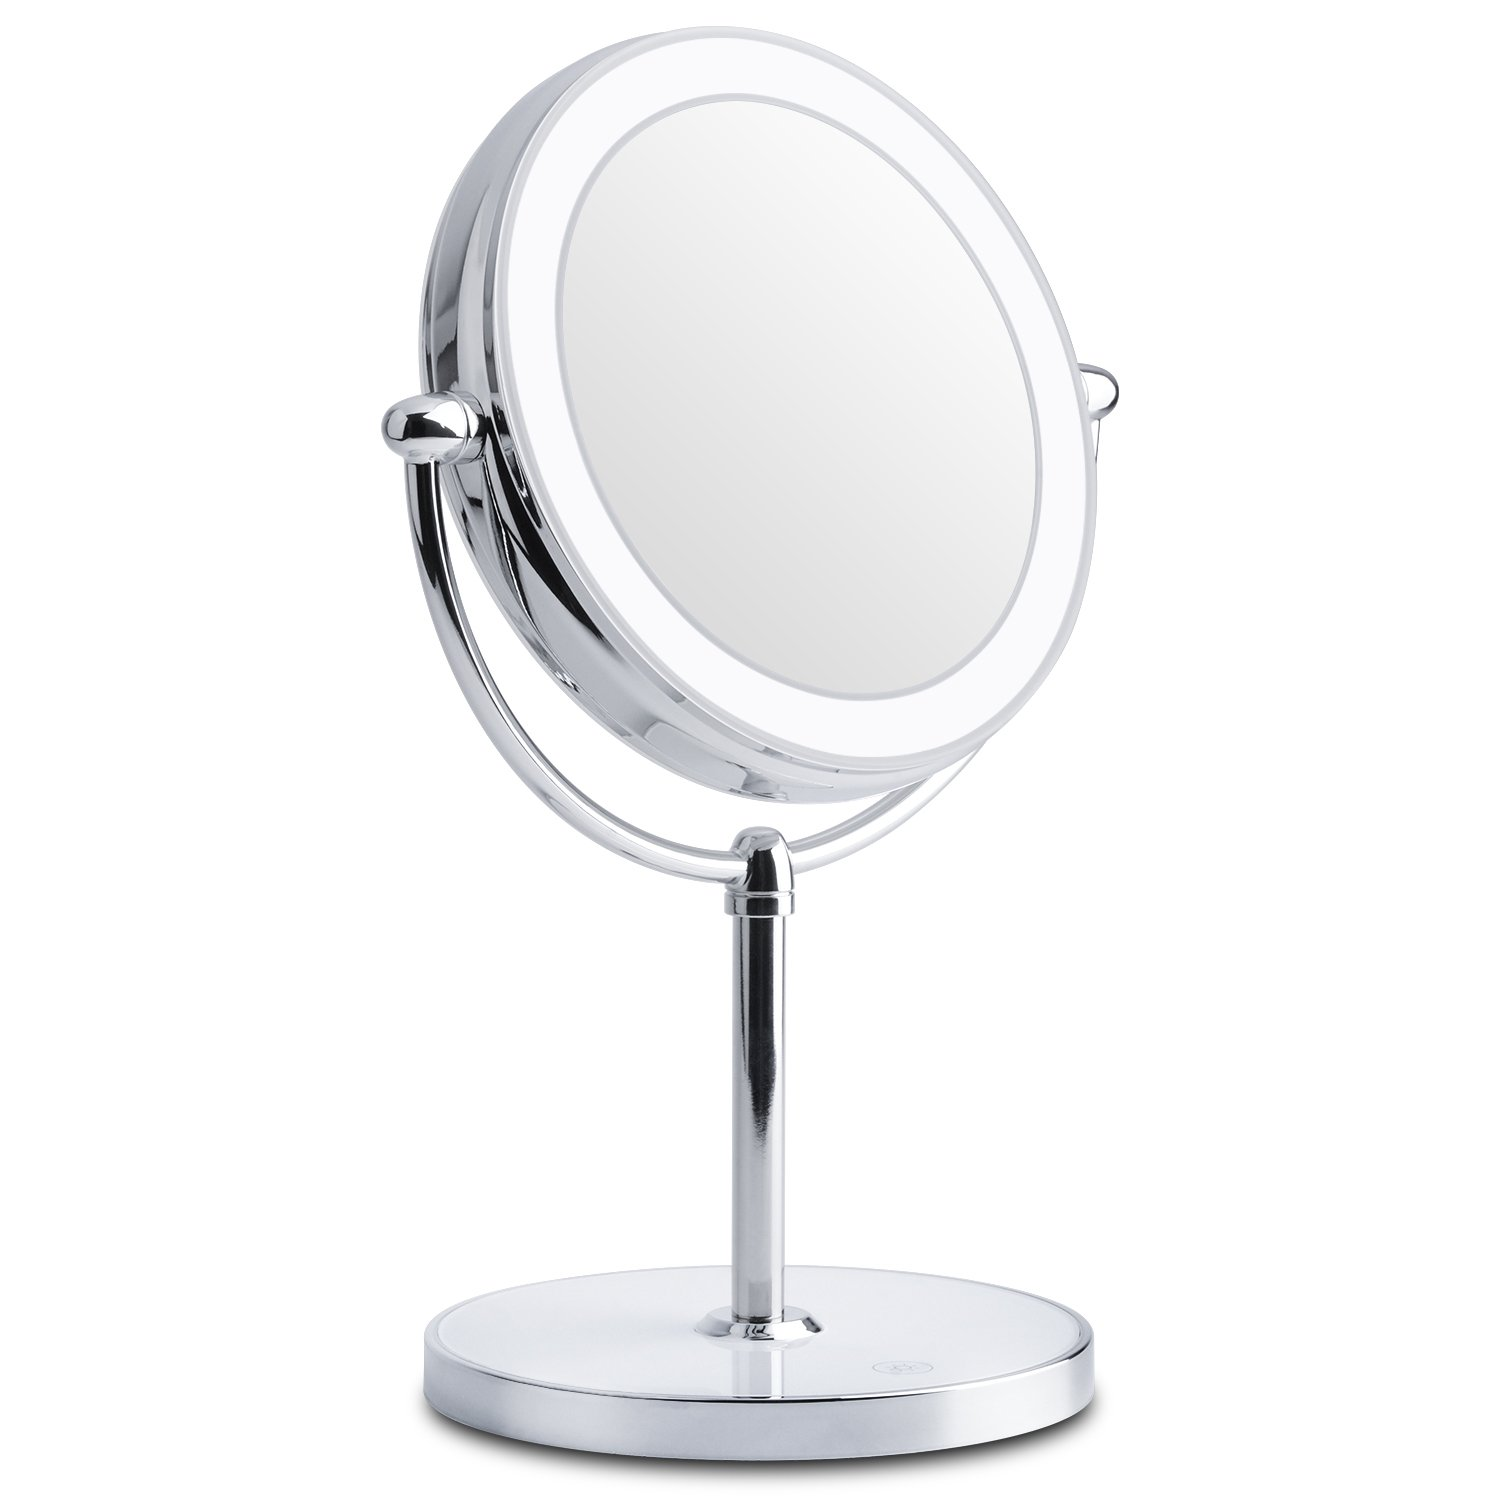 Lighted Makeup Mirror, Double-Sided LED Vanity Makeup Mirror 1x/7x Magnification with Built-in Lithium Battery for Beauty Cosmetic Applying, Rechargeable and Wireless